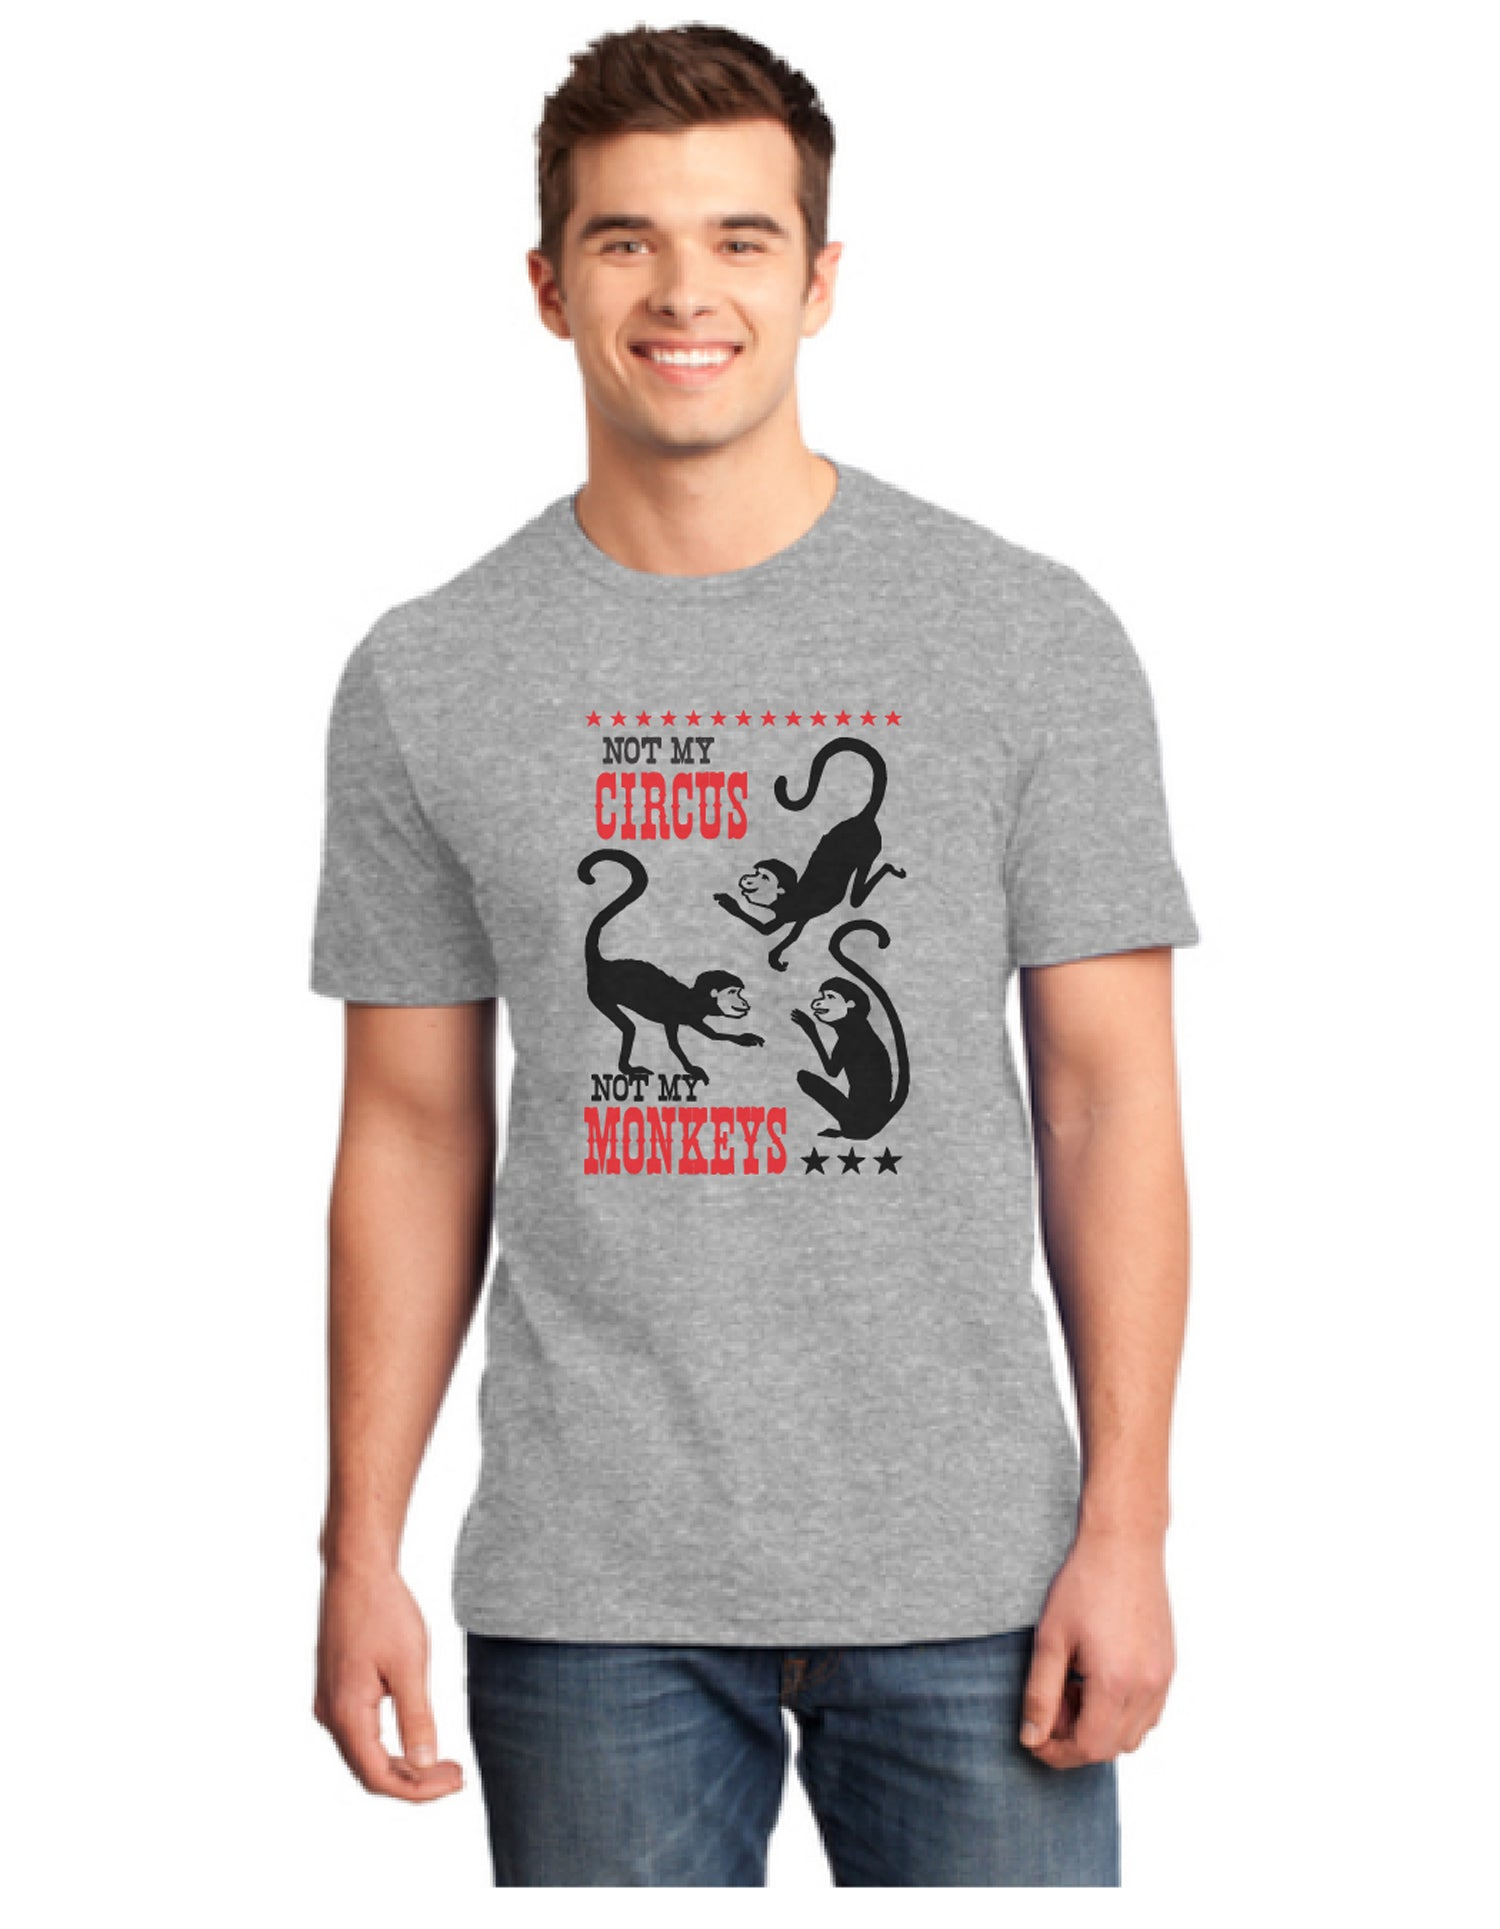 Not My Monkeys, Short sleeve Crew Neck T-Shirt - MENS/UNISEX